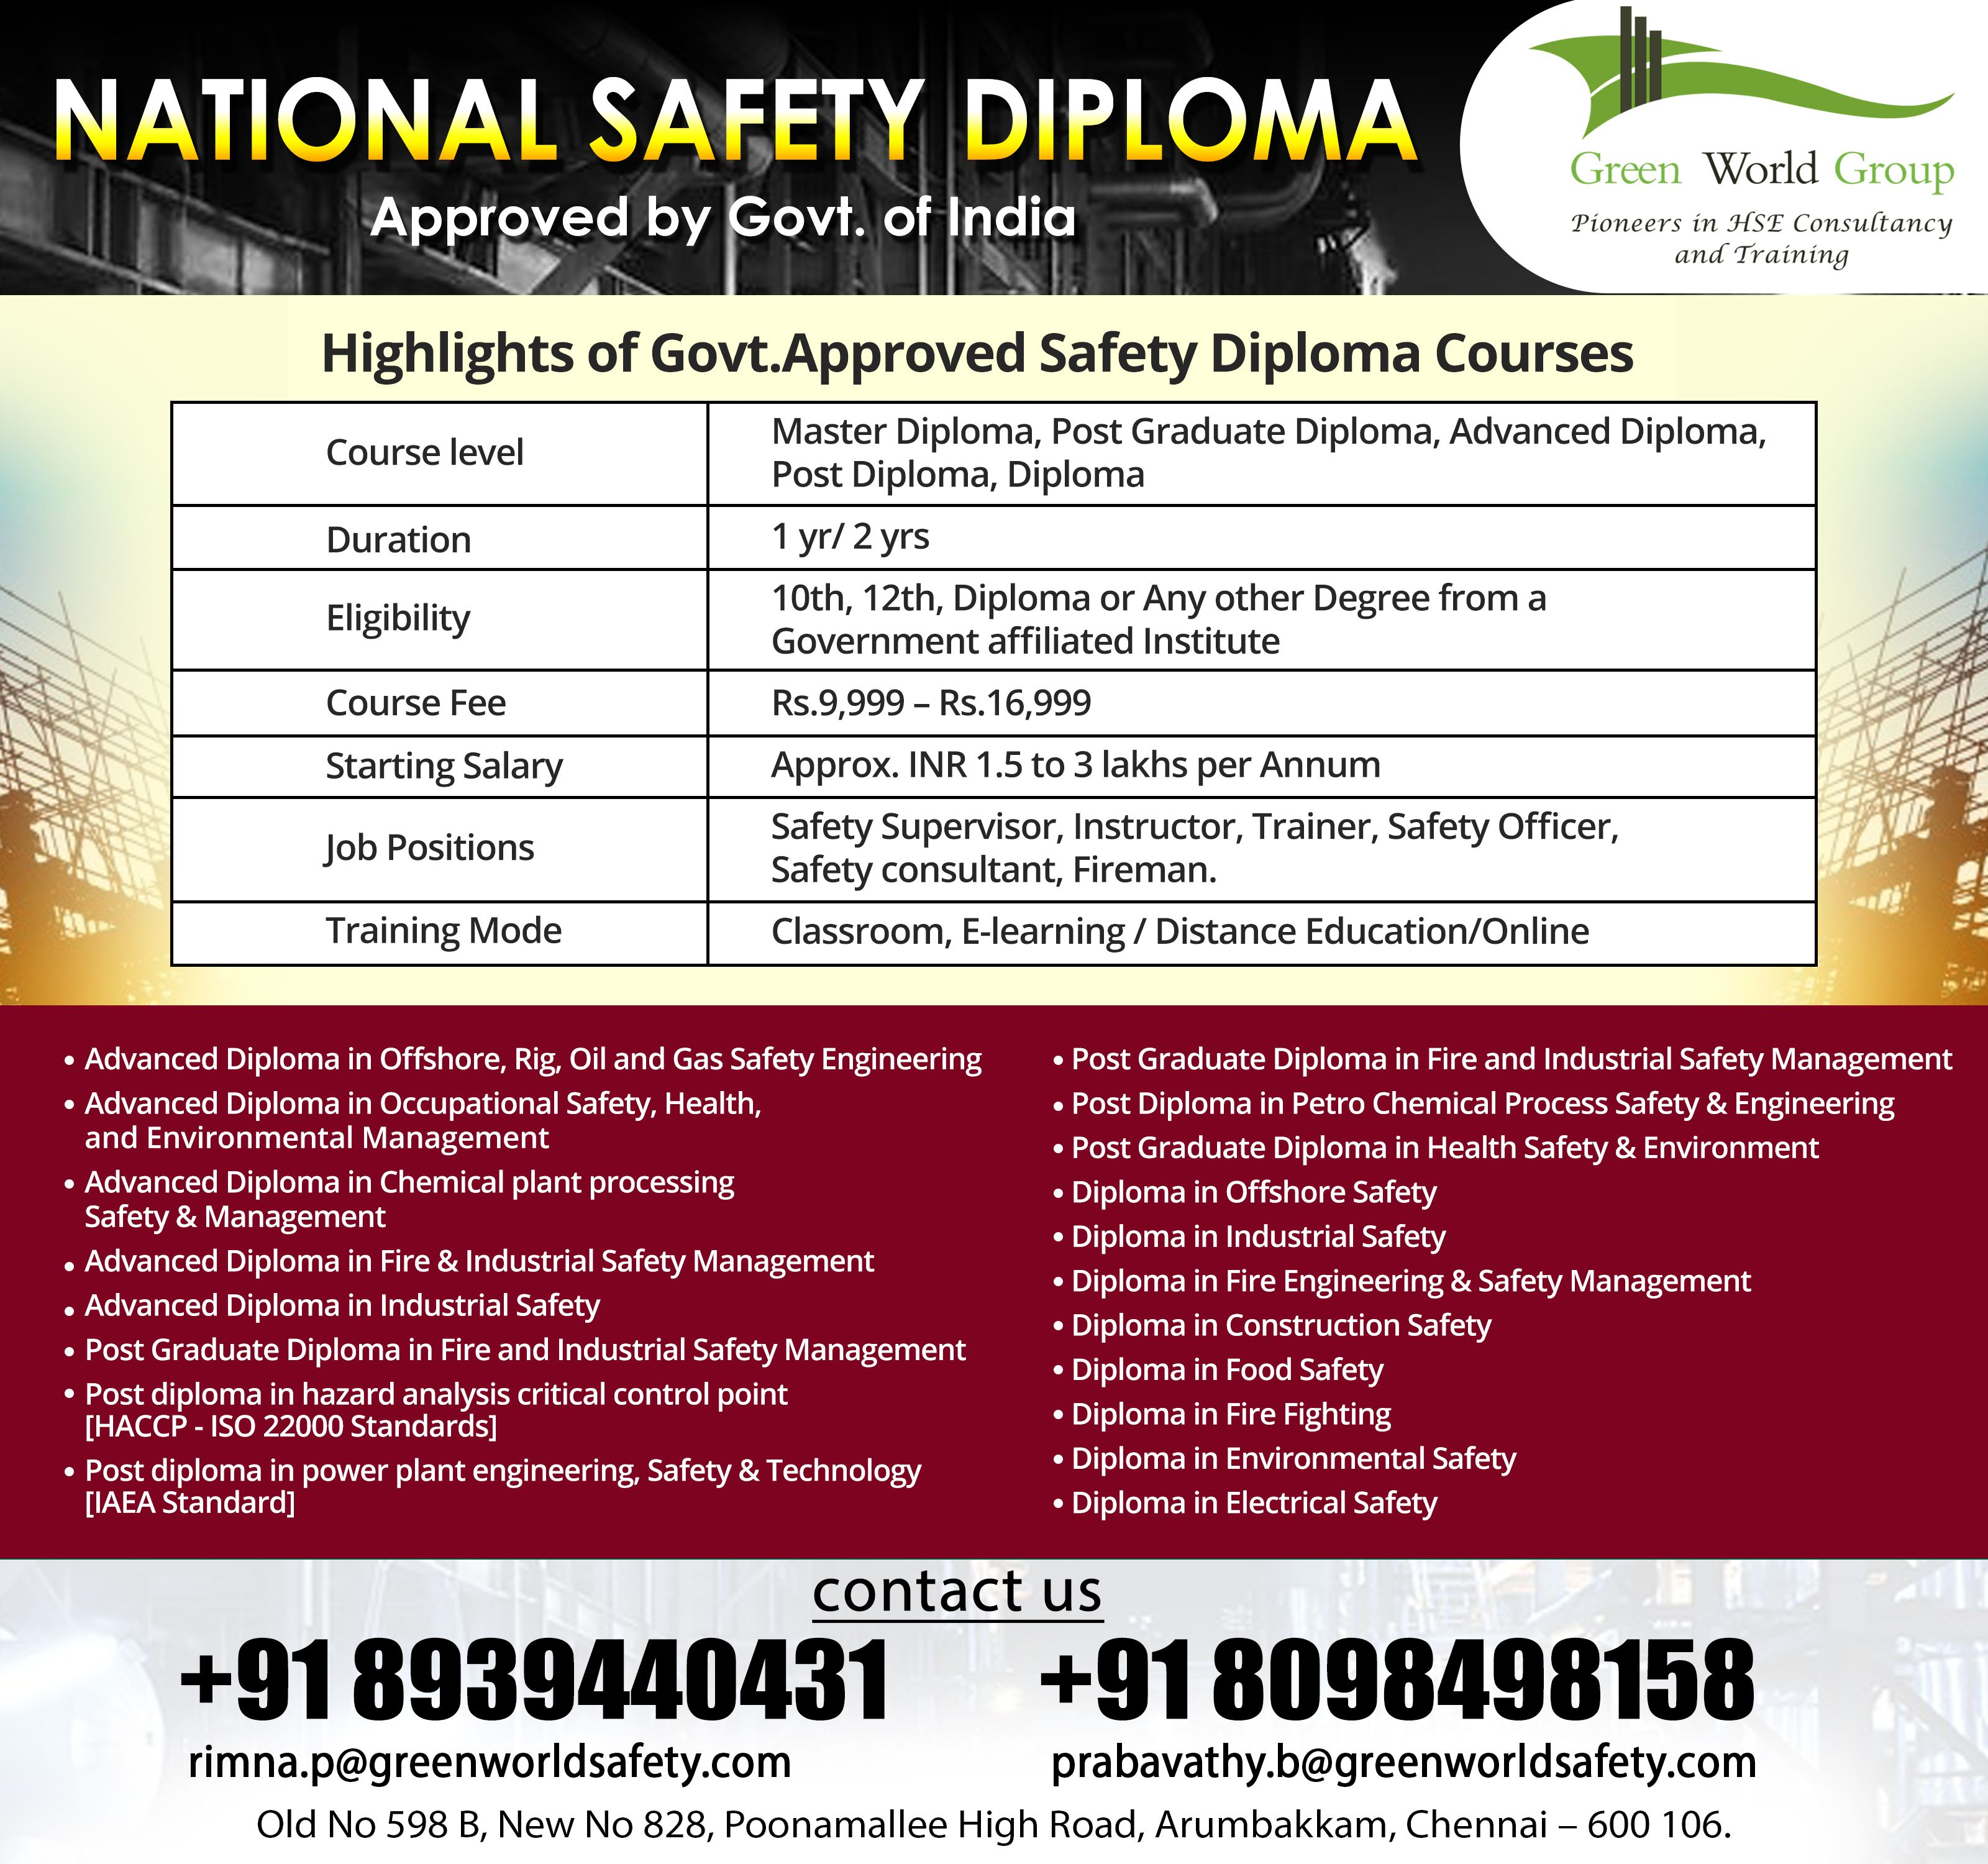 Safety Course in Chennai (With images) National safety